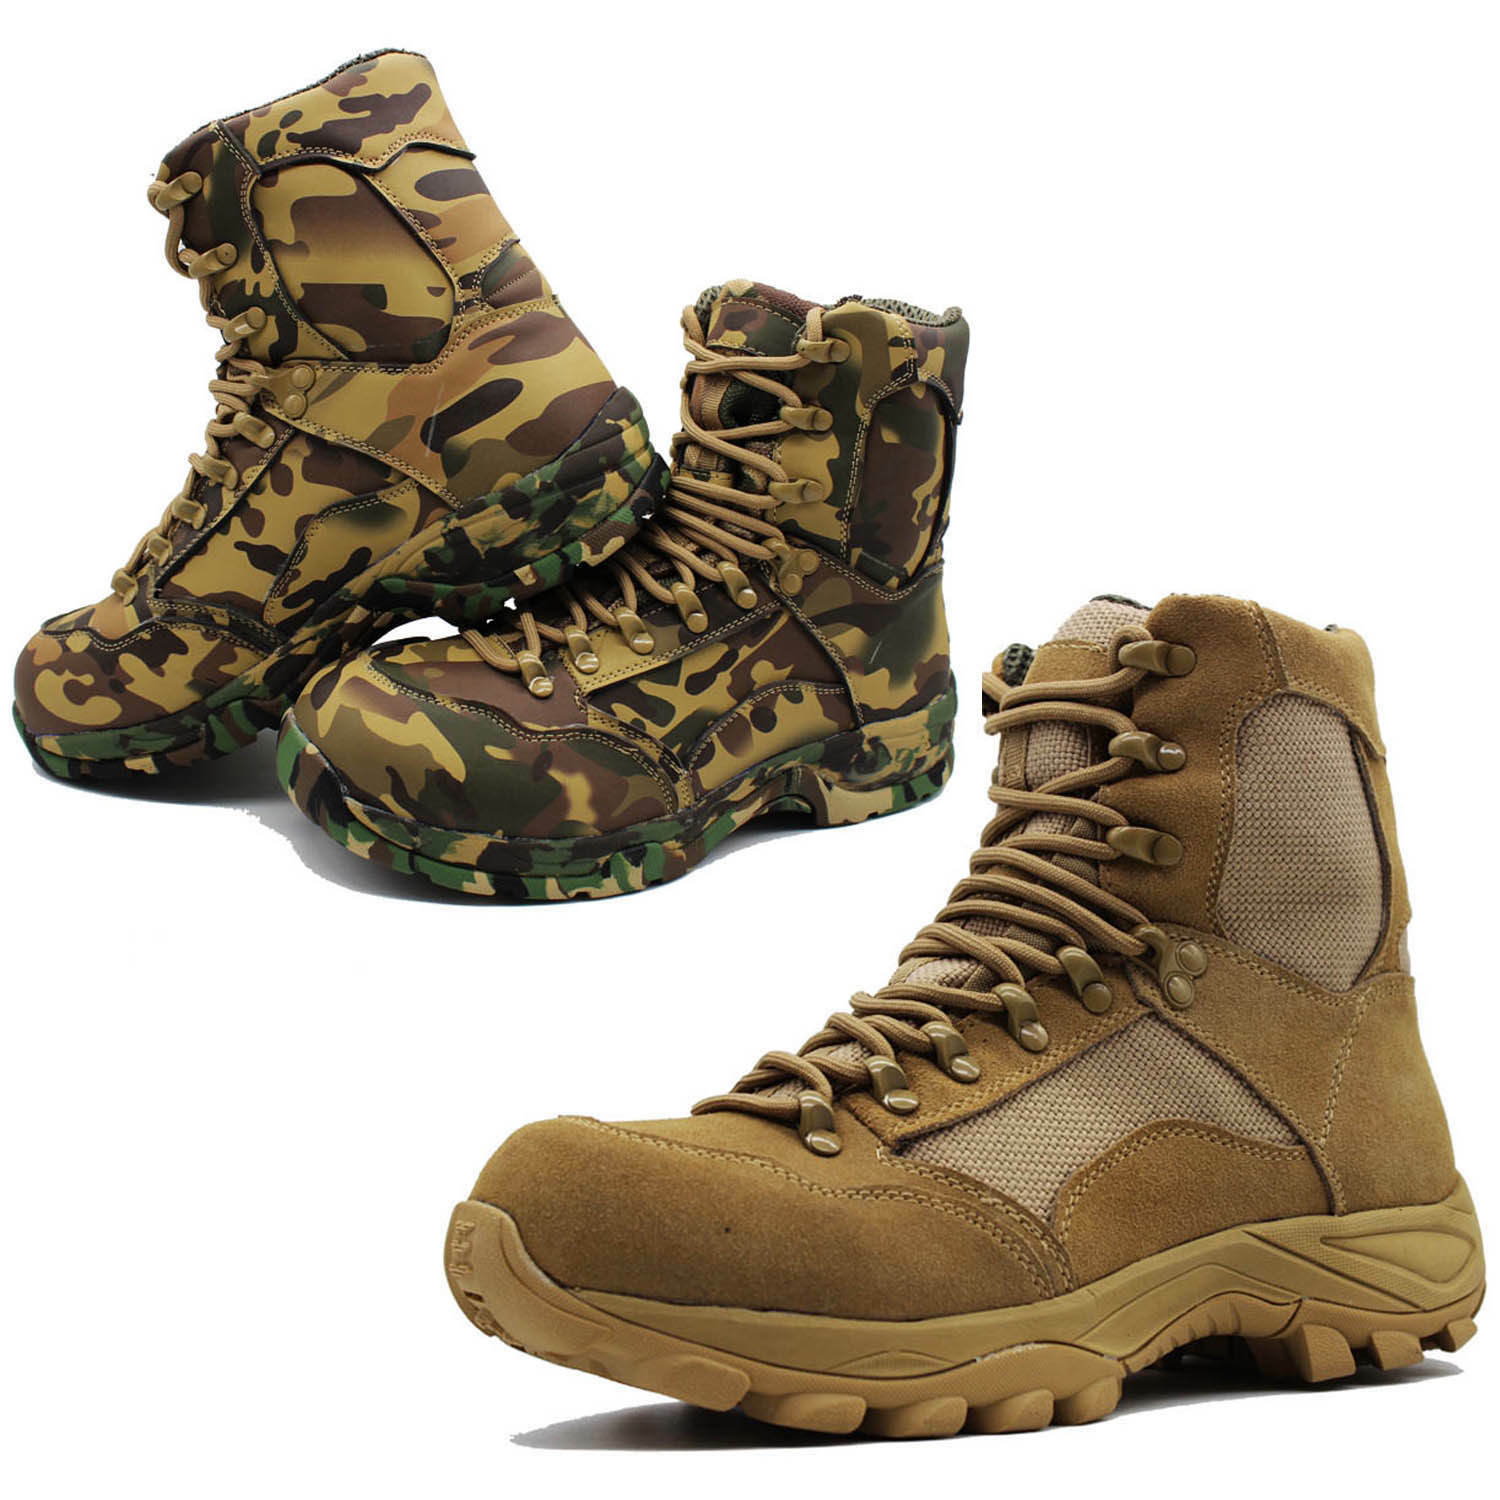 Mens Army Durable Tactical Combat Boots Outdoor Climbing Waterproof shoes US6-12